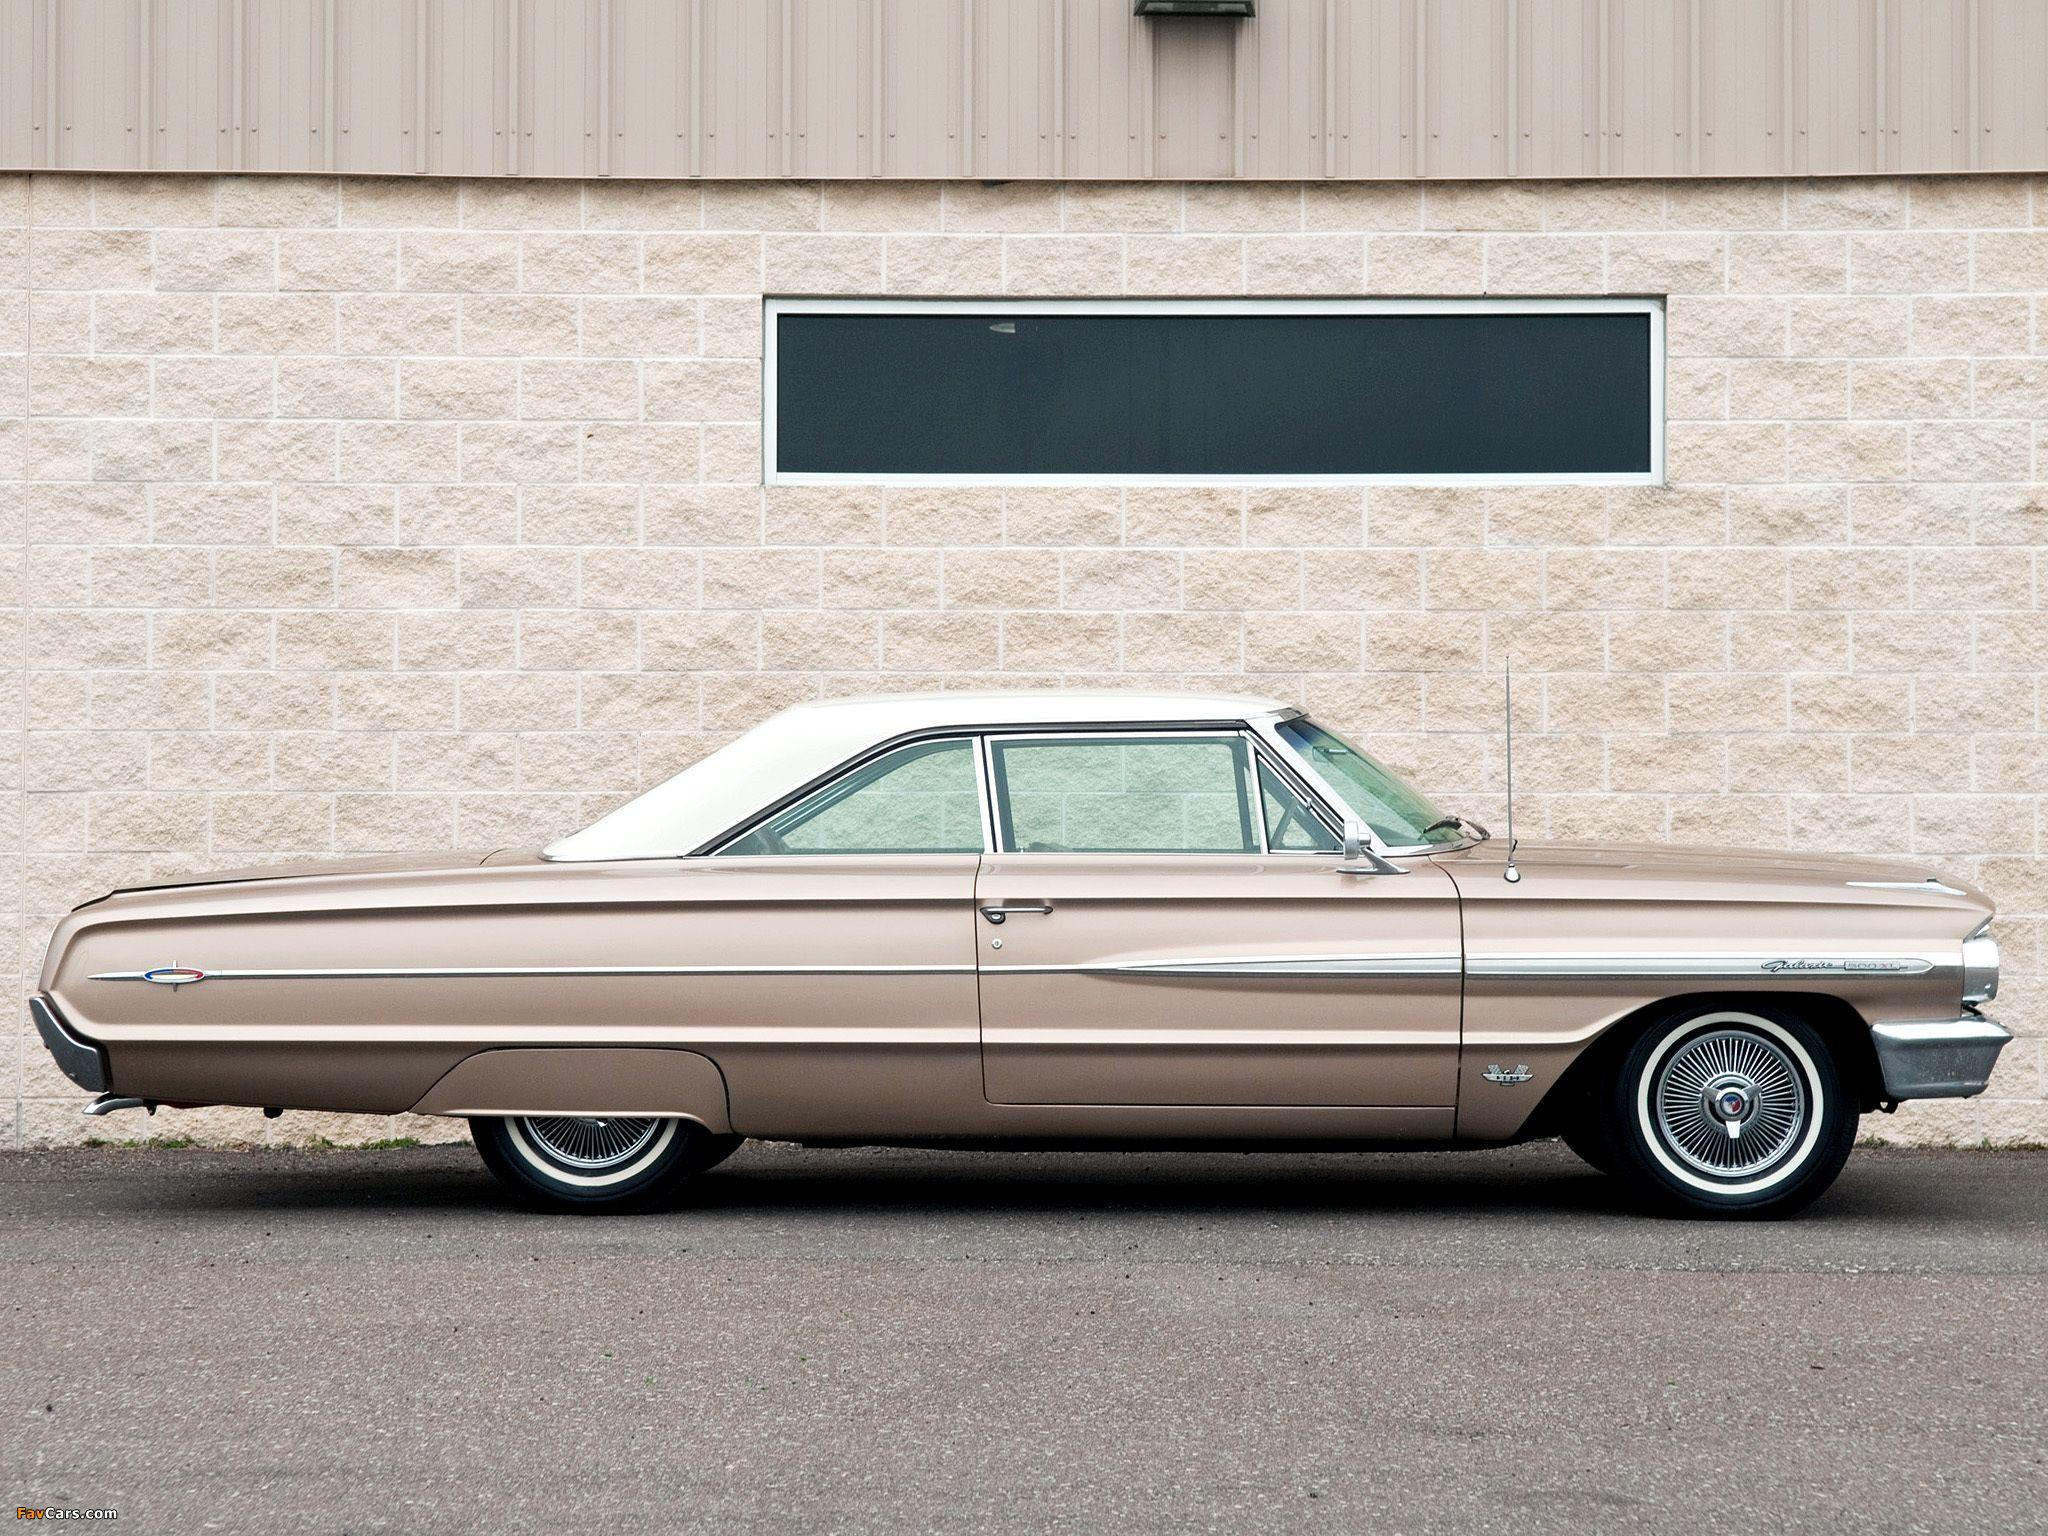 Ford Galaxie 500 XL Hardtop Coupe 1964 wallpapers (2048x1536)